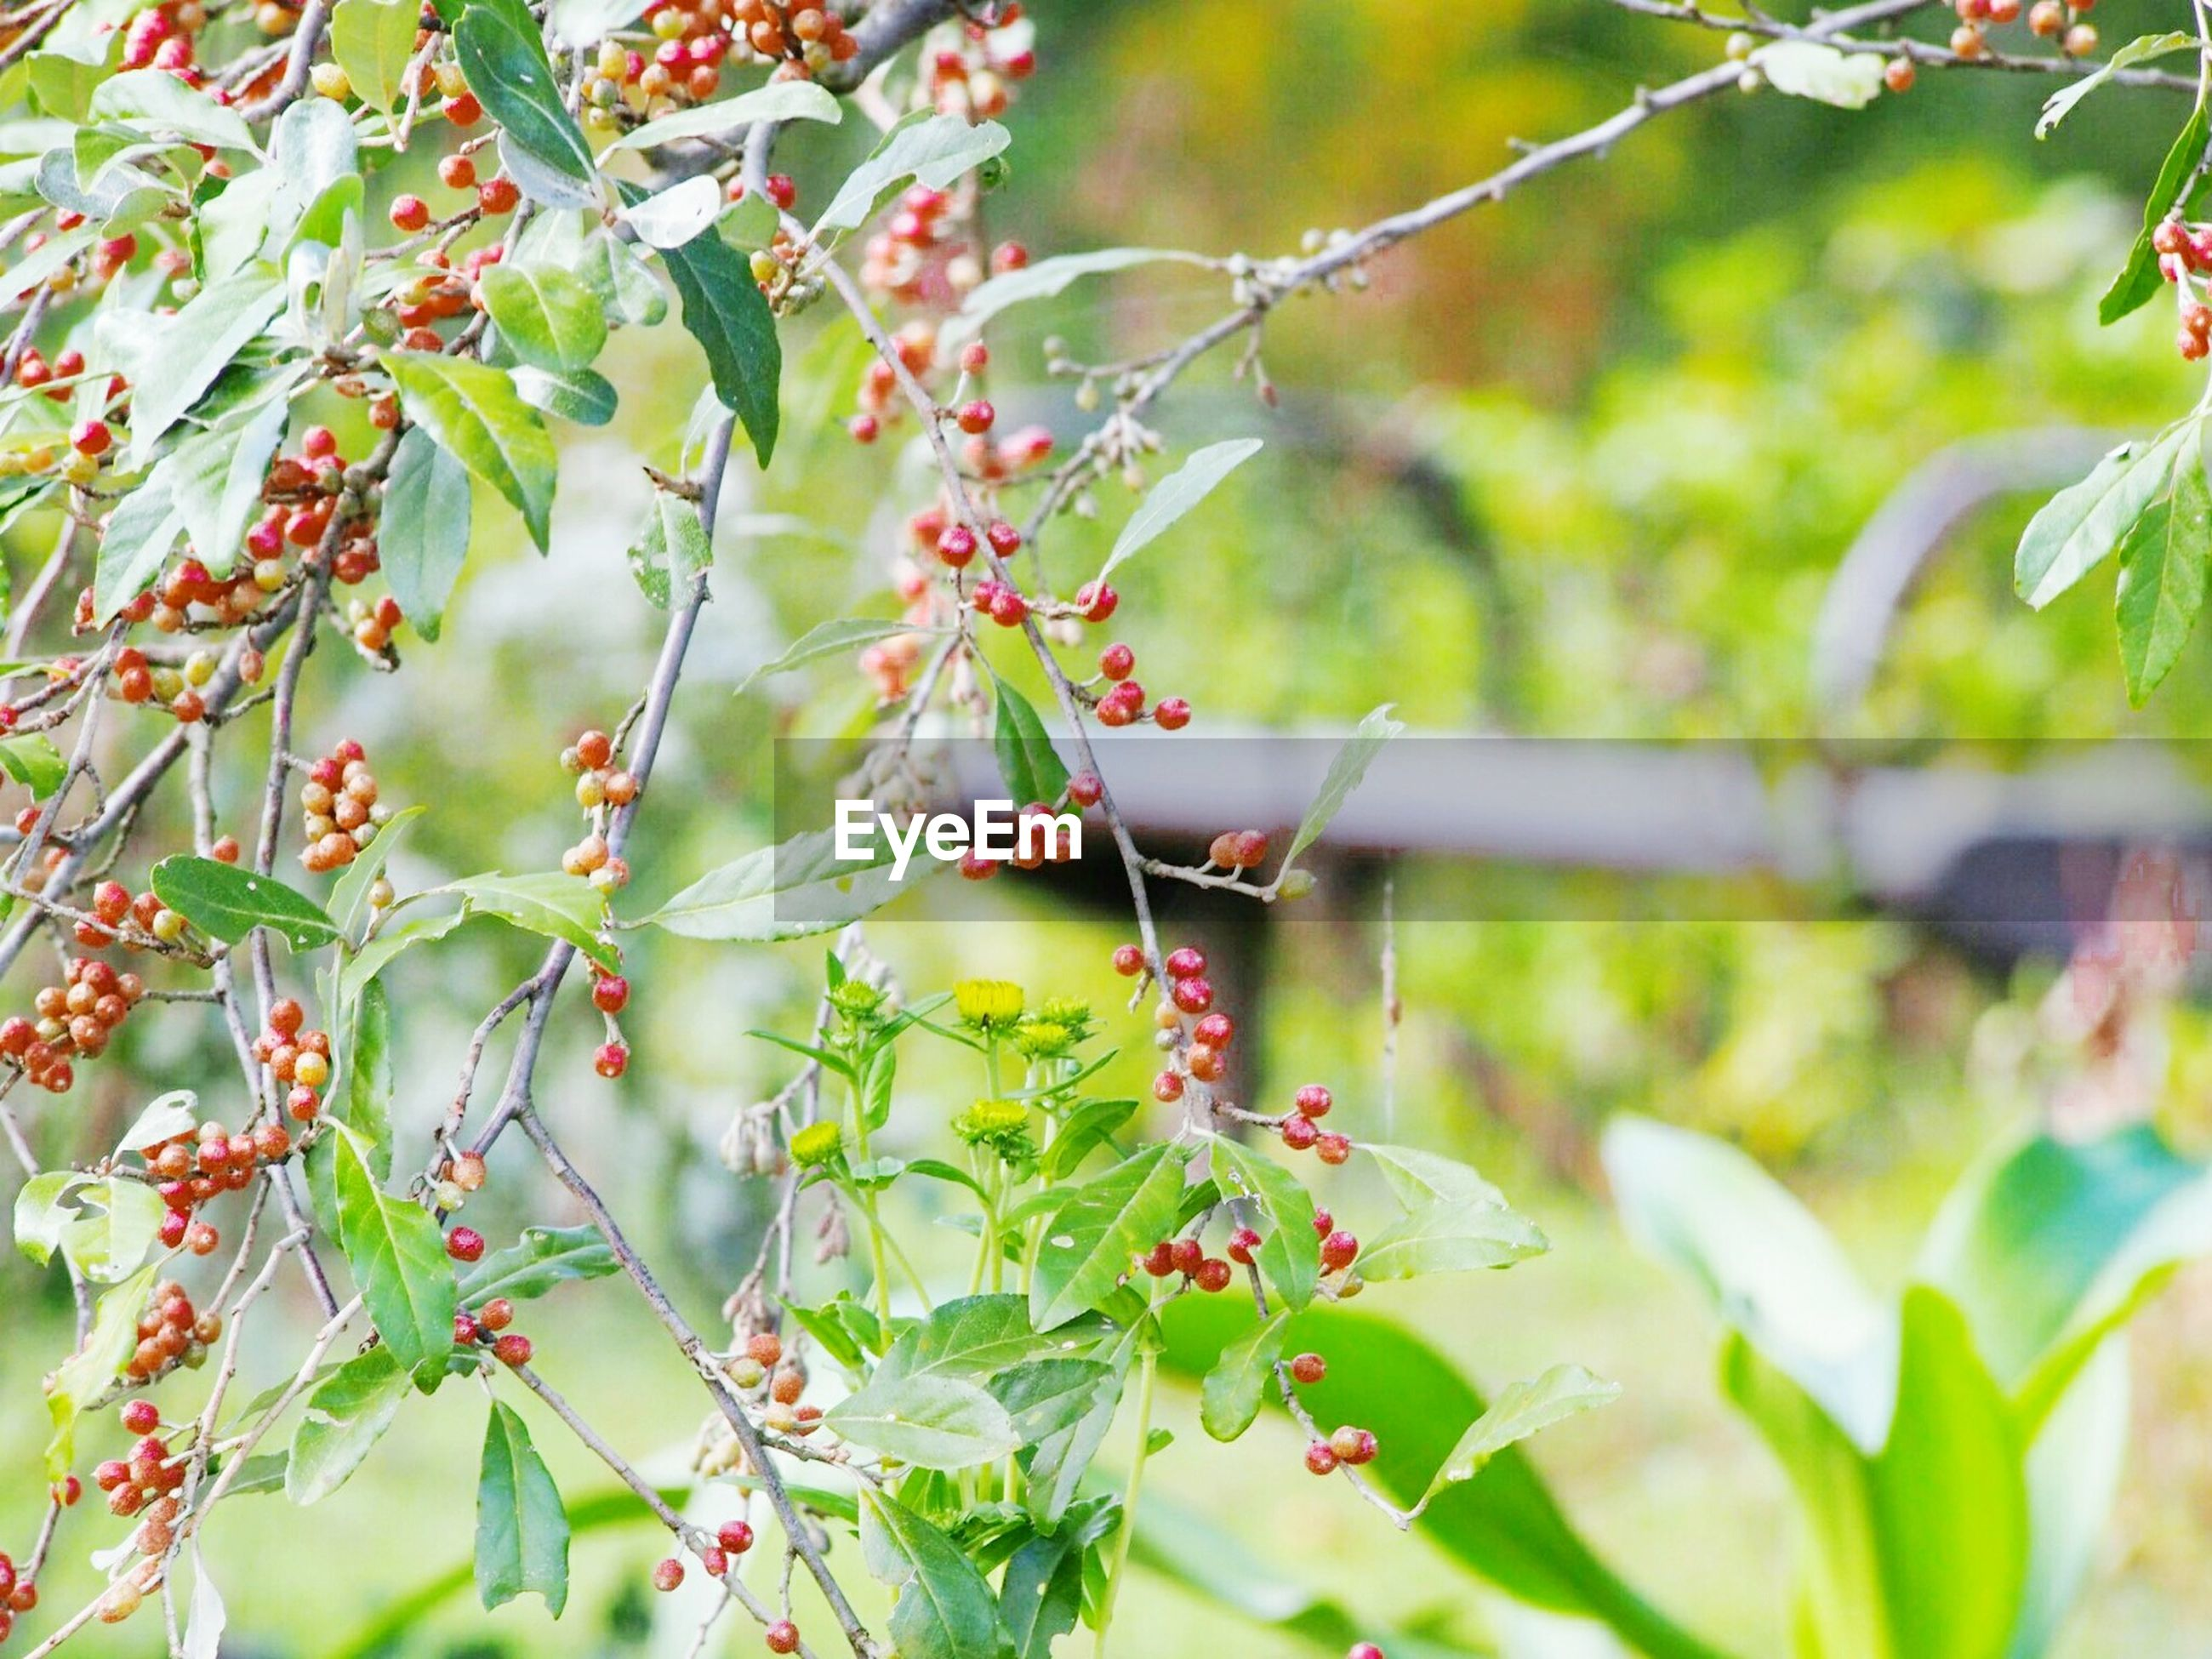 growth, nature, tree, focus on foreground, outdoors, close-up, beauty in nature, freshness, no people, plant, branch, fruit, day, twig, green color, leaf, rowanberry